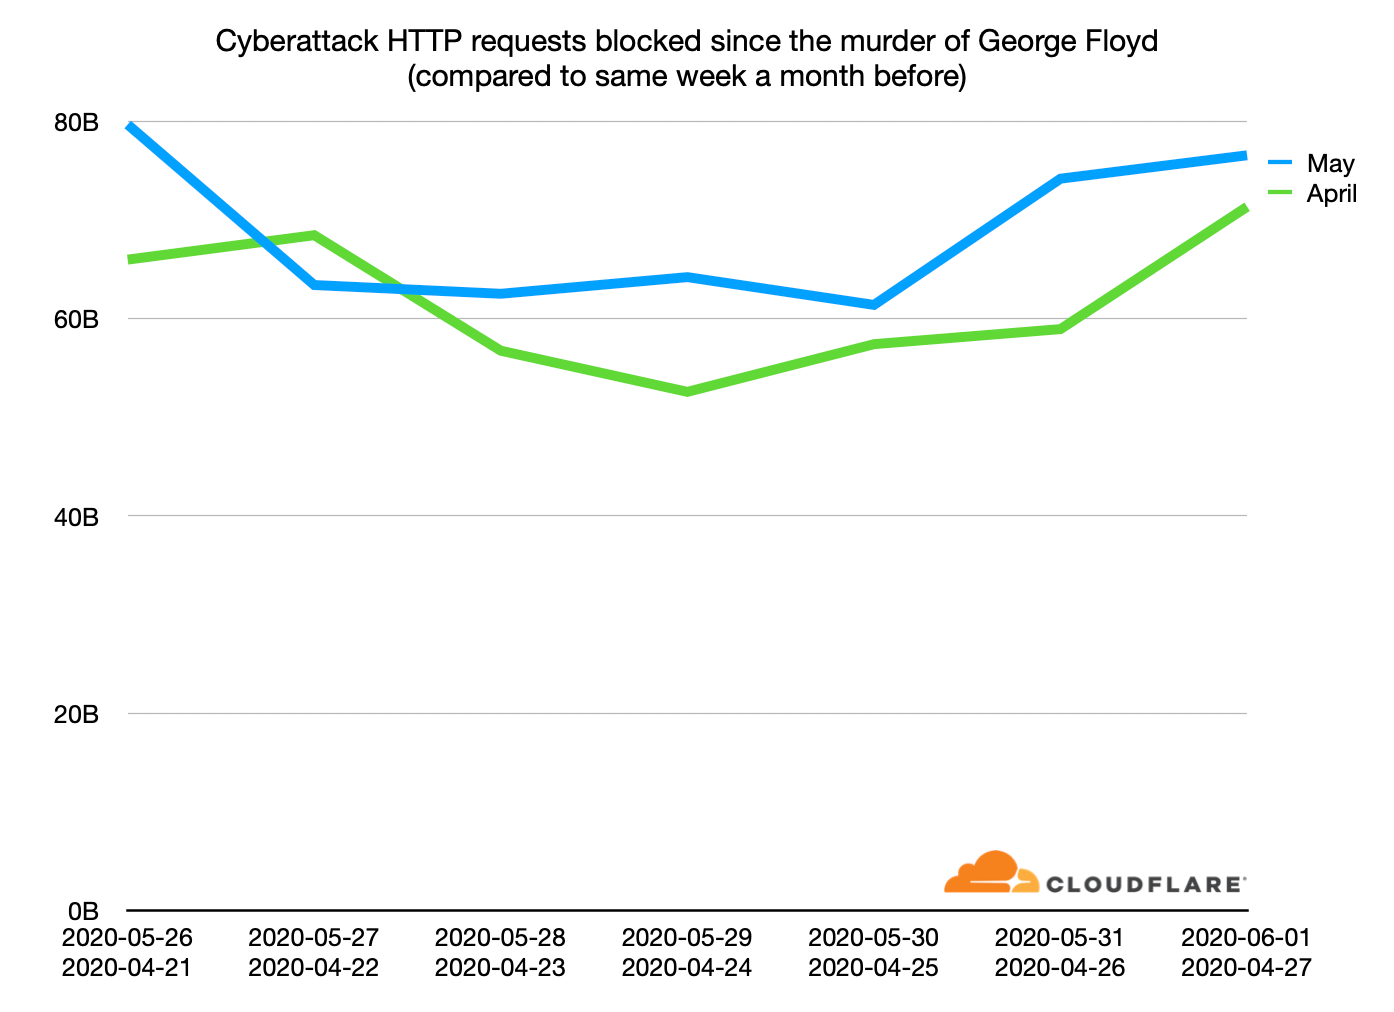 Cyberattacks since the murder of George Floyd